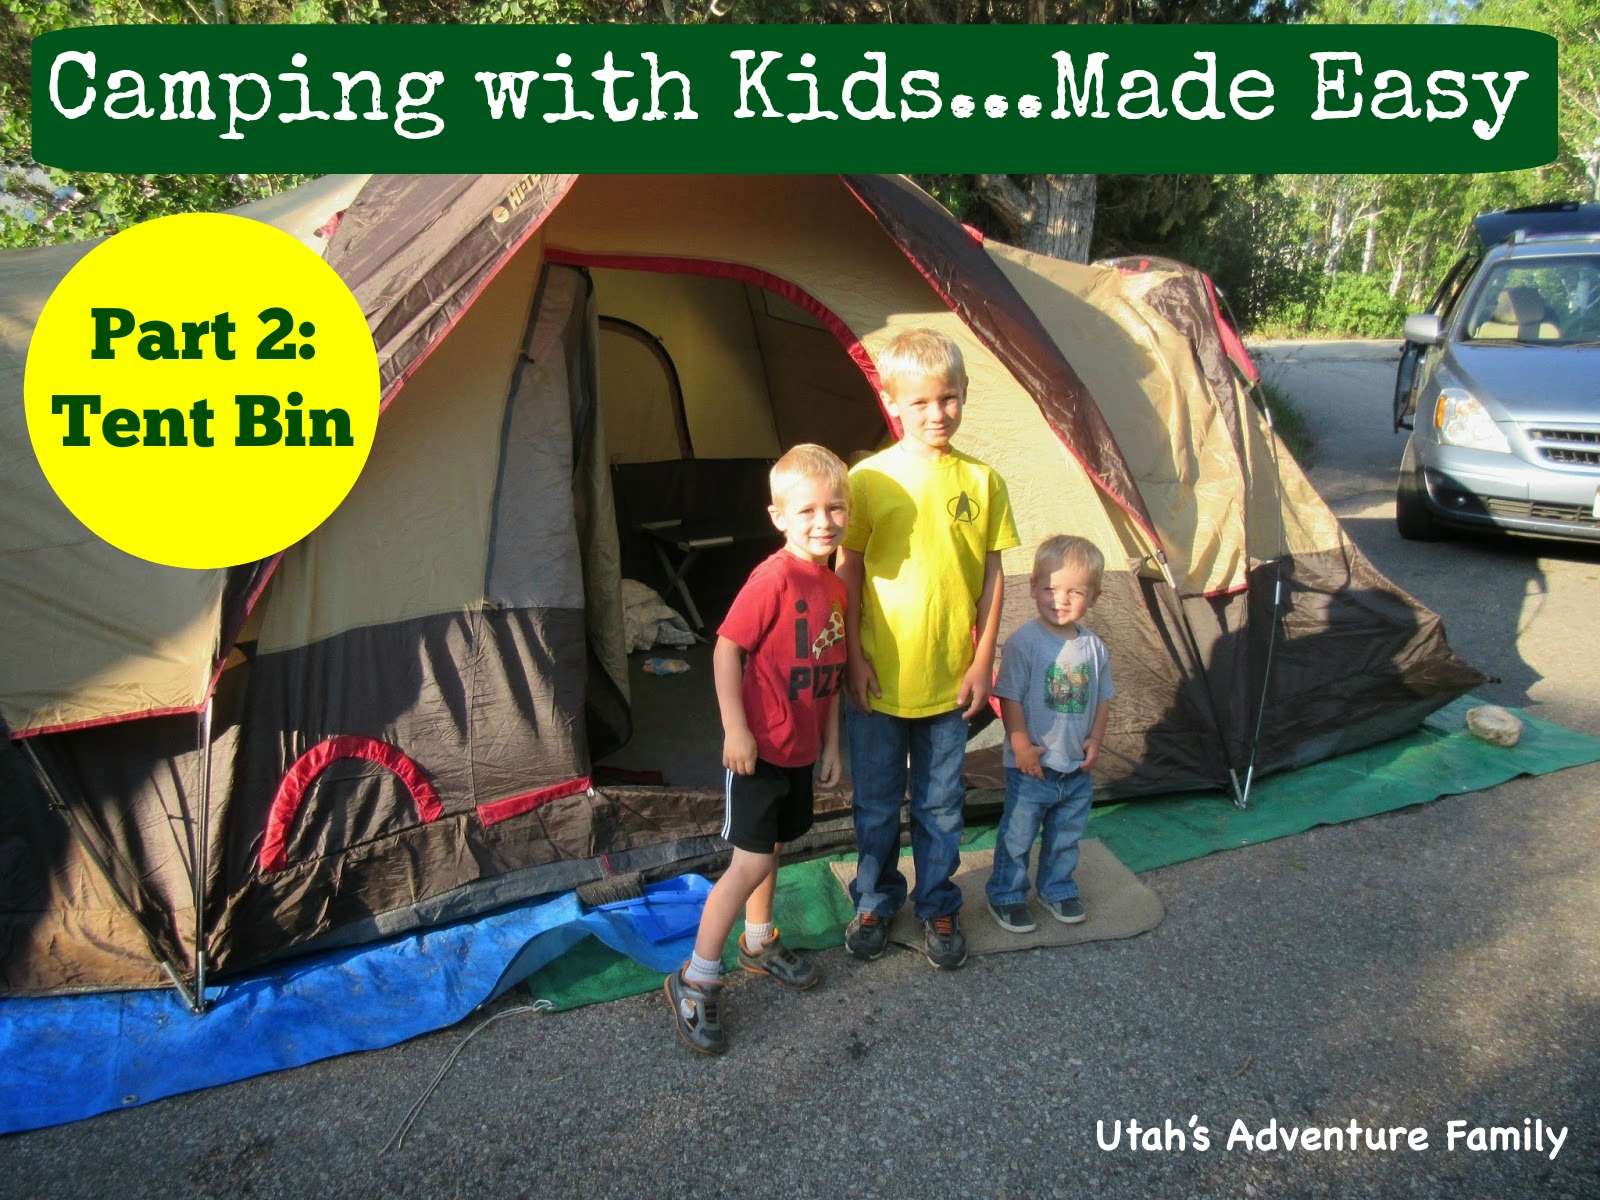 Made Easy (Part 2) & Camping with Kids...Made Easy (Part 2) - Utahu0027s Adventure Family